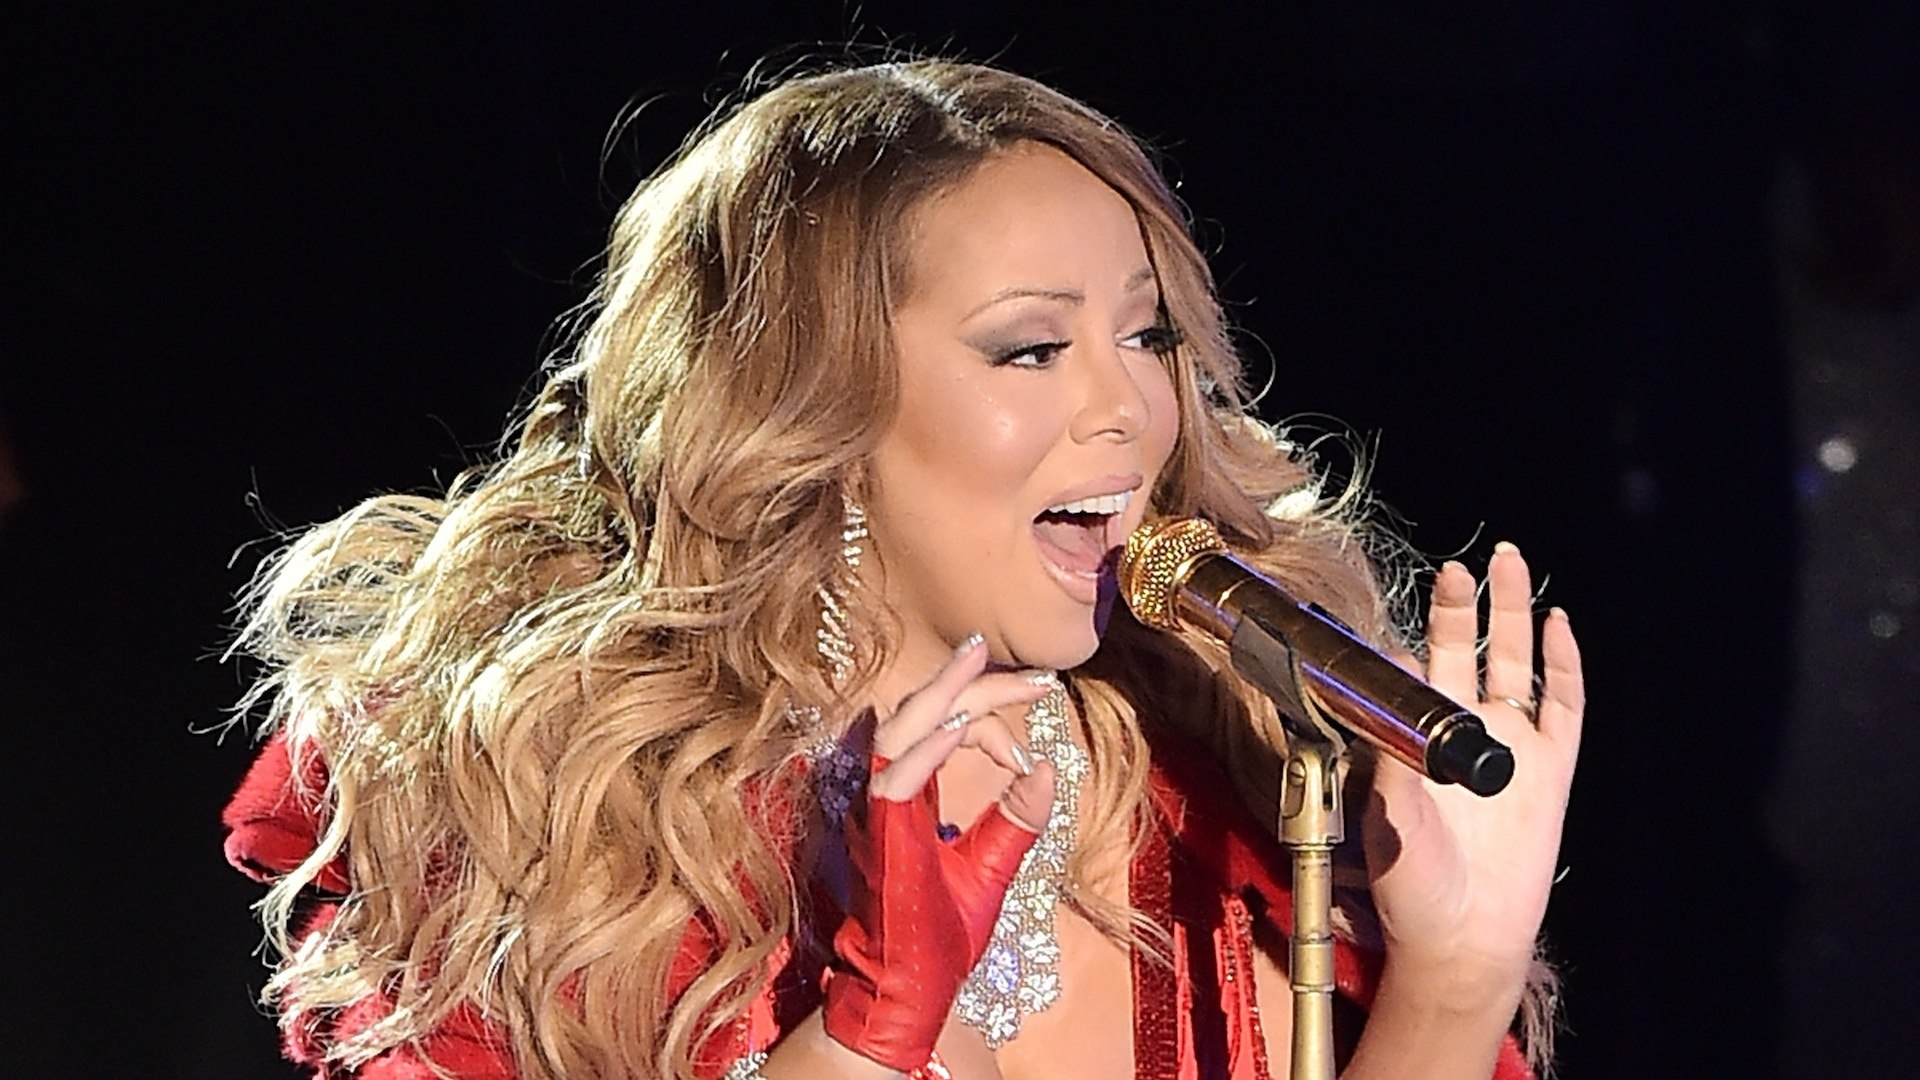 Mariah Carey All I Want For Christmas Mic Feed.Hear Mariah Carey S Disastrous All I Want For Christmas Is You